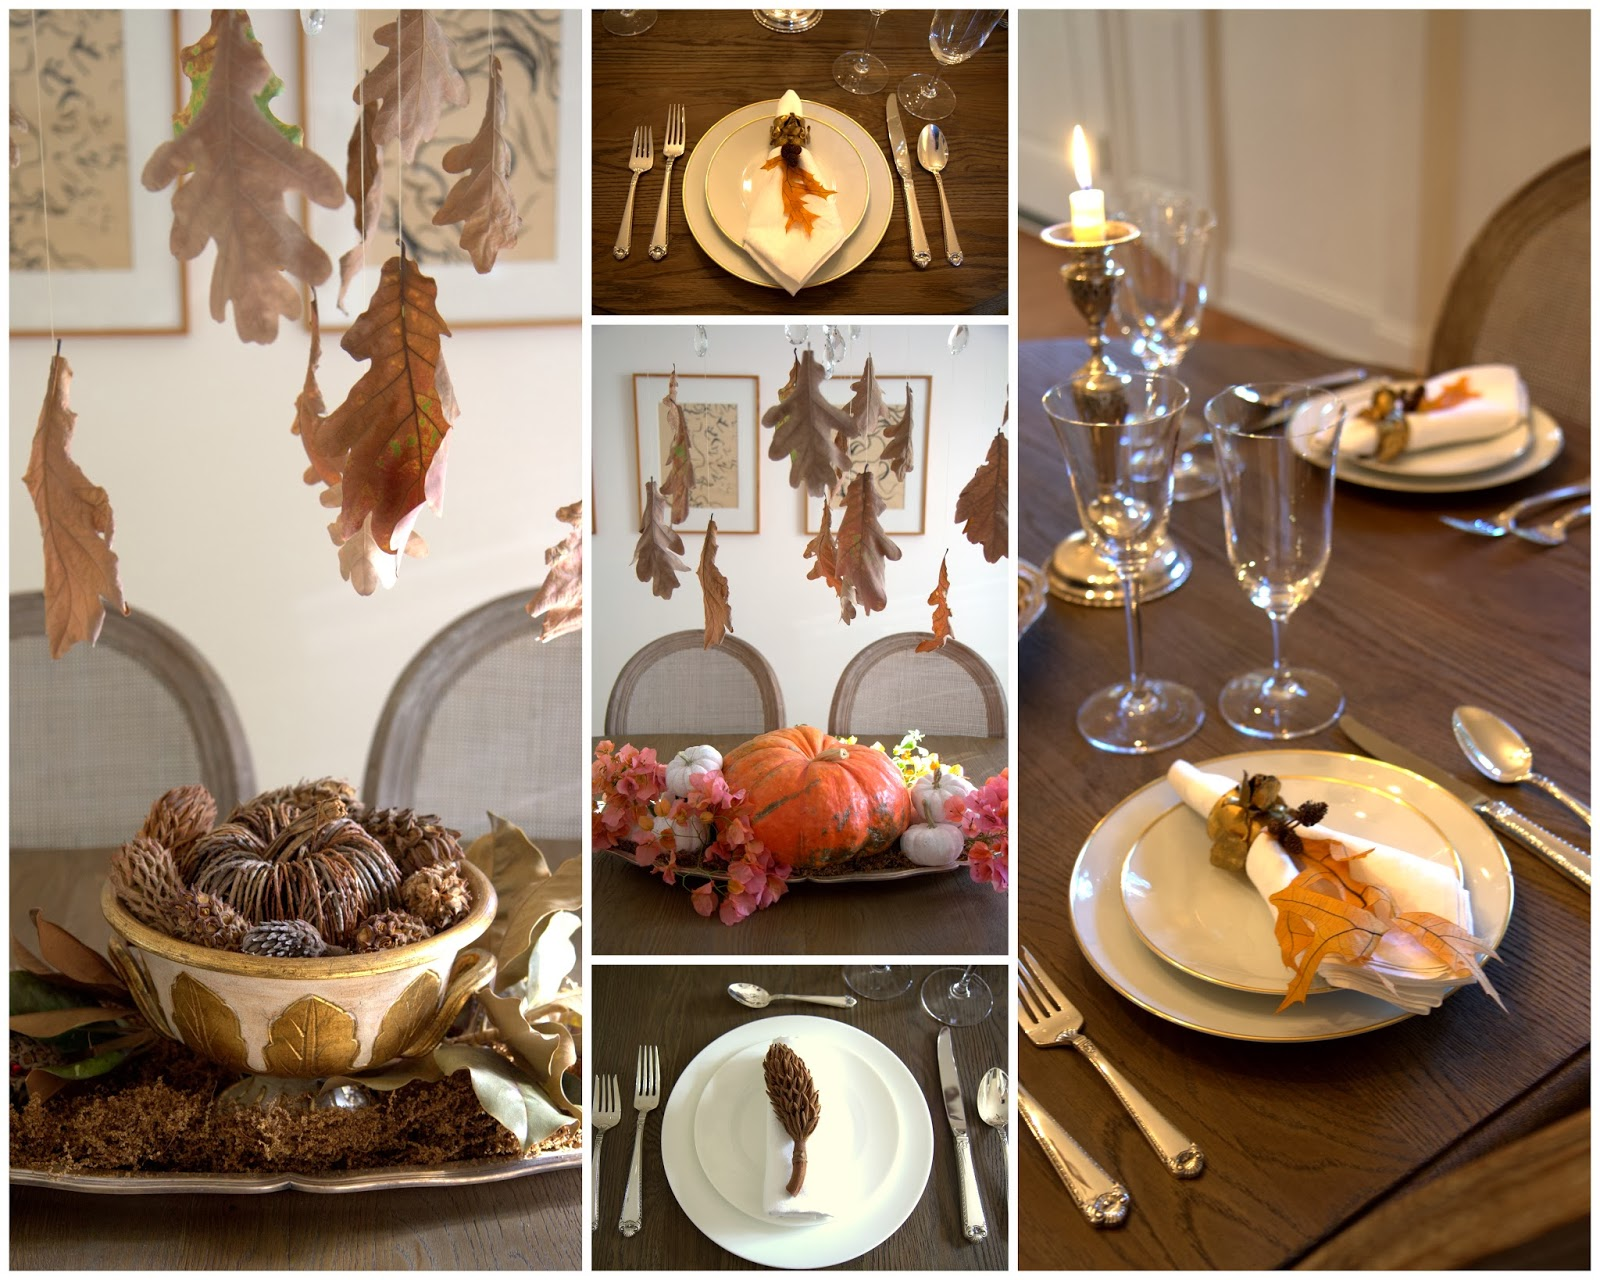 Decorating the Thanksgiving Table